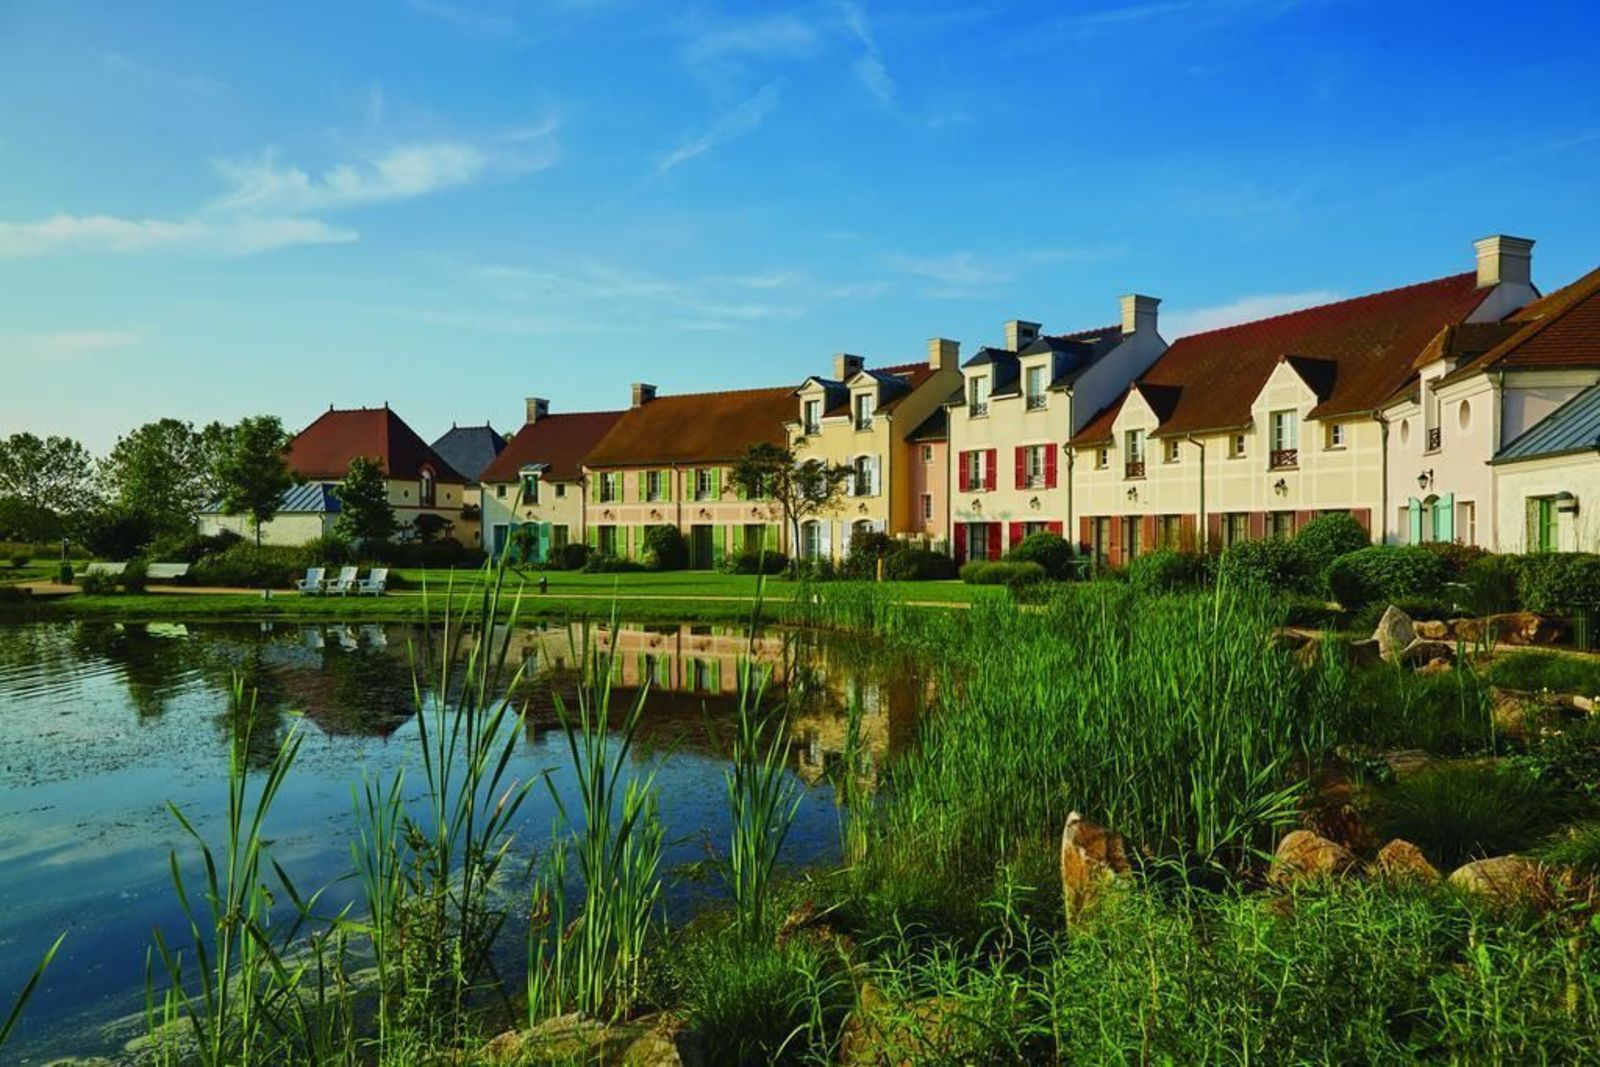 Marriott's Village d'ile-de-France, Studio